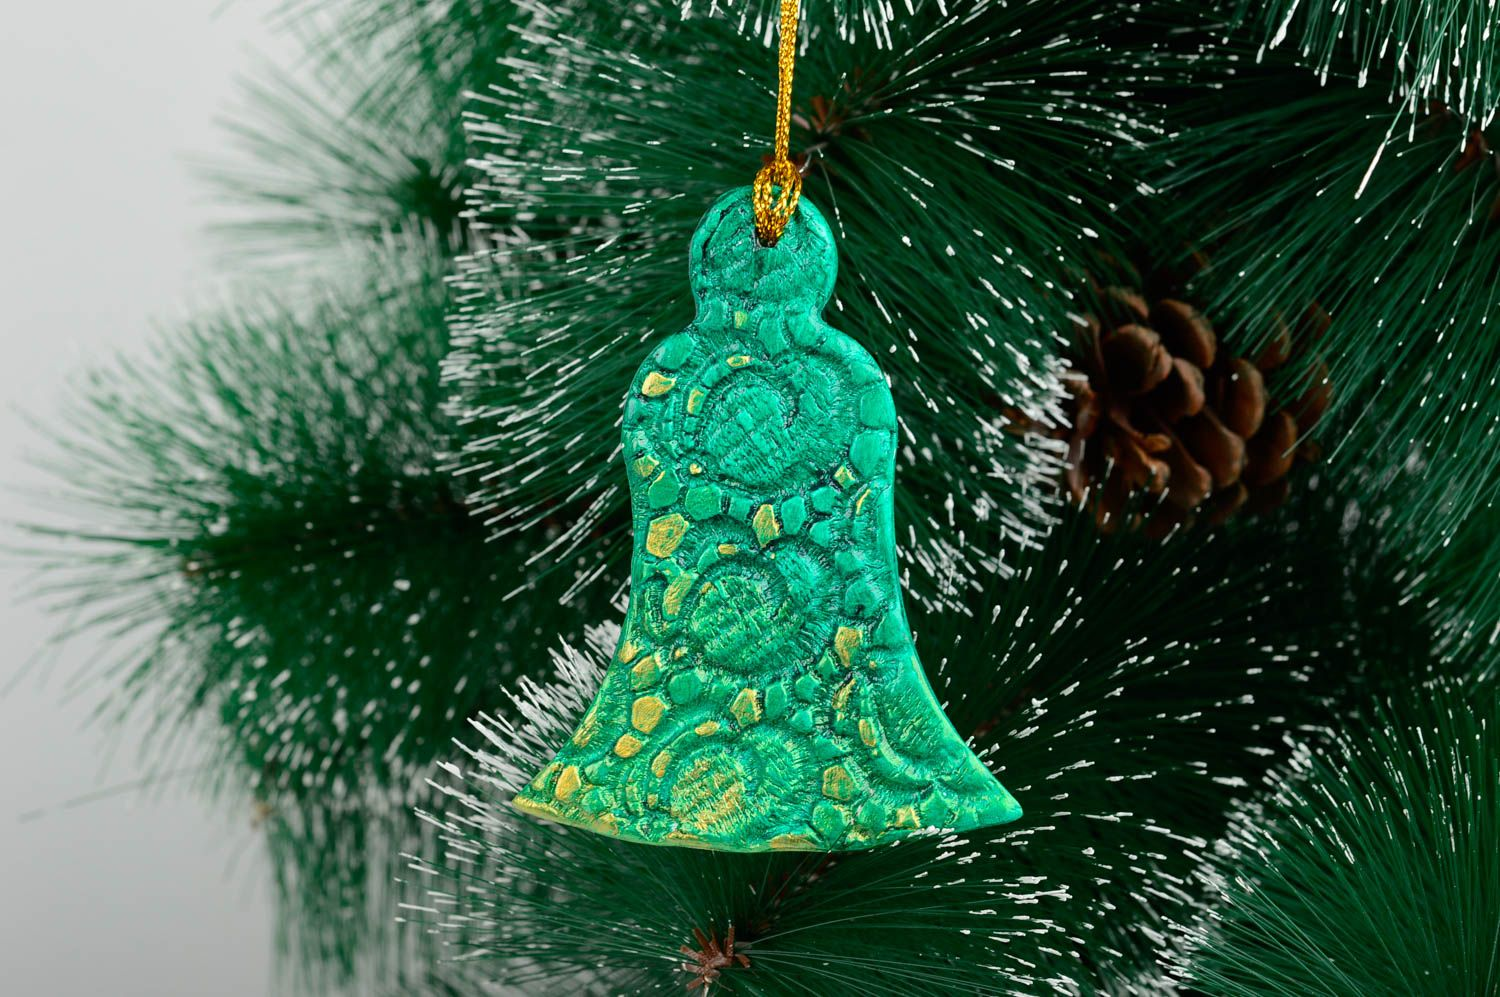 Ceramic Christmas Tree Decorations.Ceramic Christmas Tree Decor Handmade Clay Wall Hanging Decorative Use Only